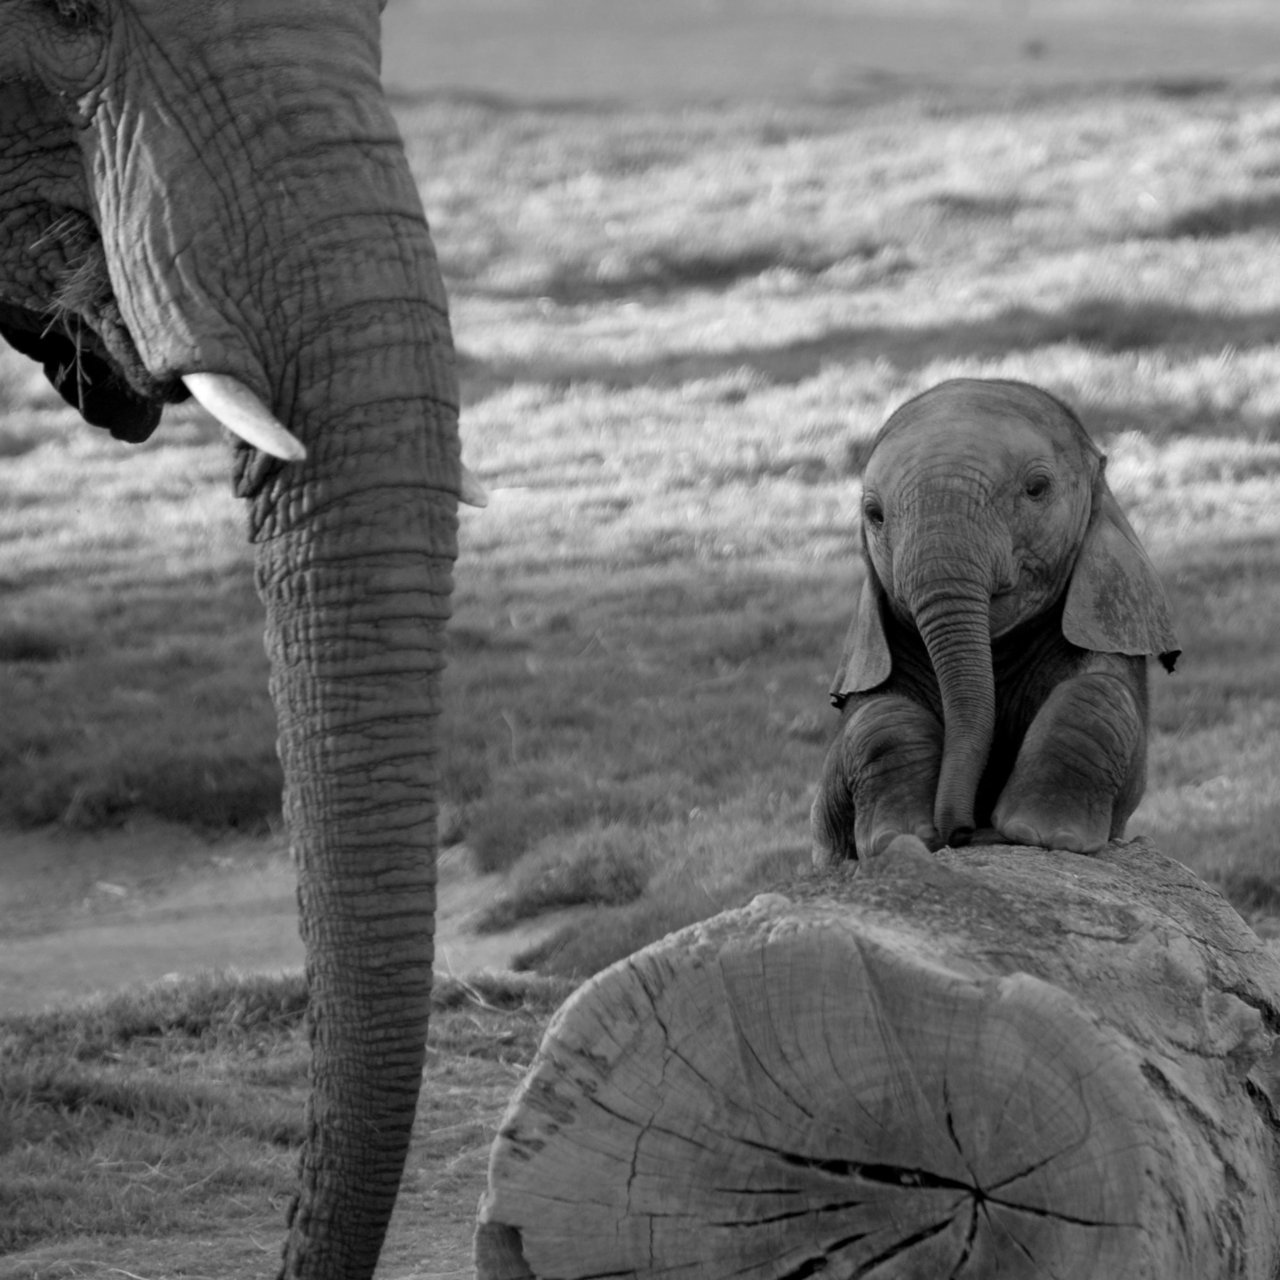 cutegirlslovecutethings:  I just want to hug it  I love elephants ❤😊